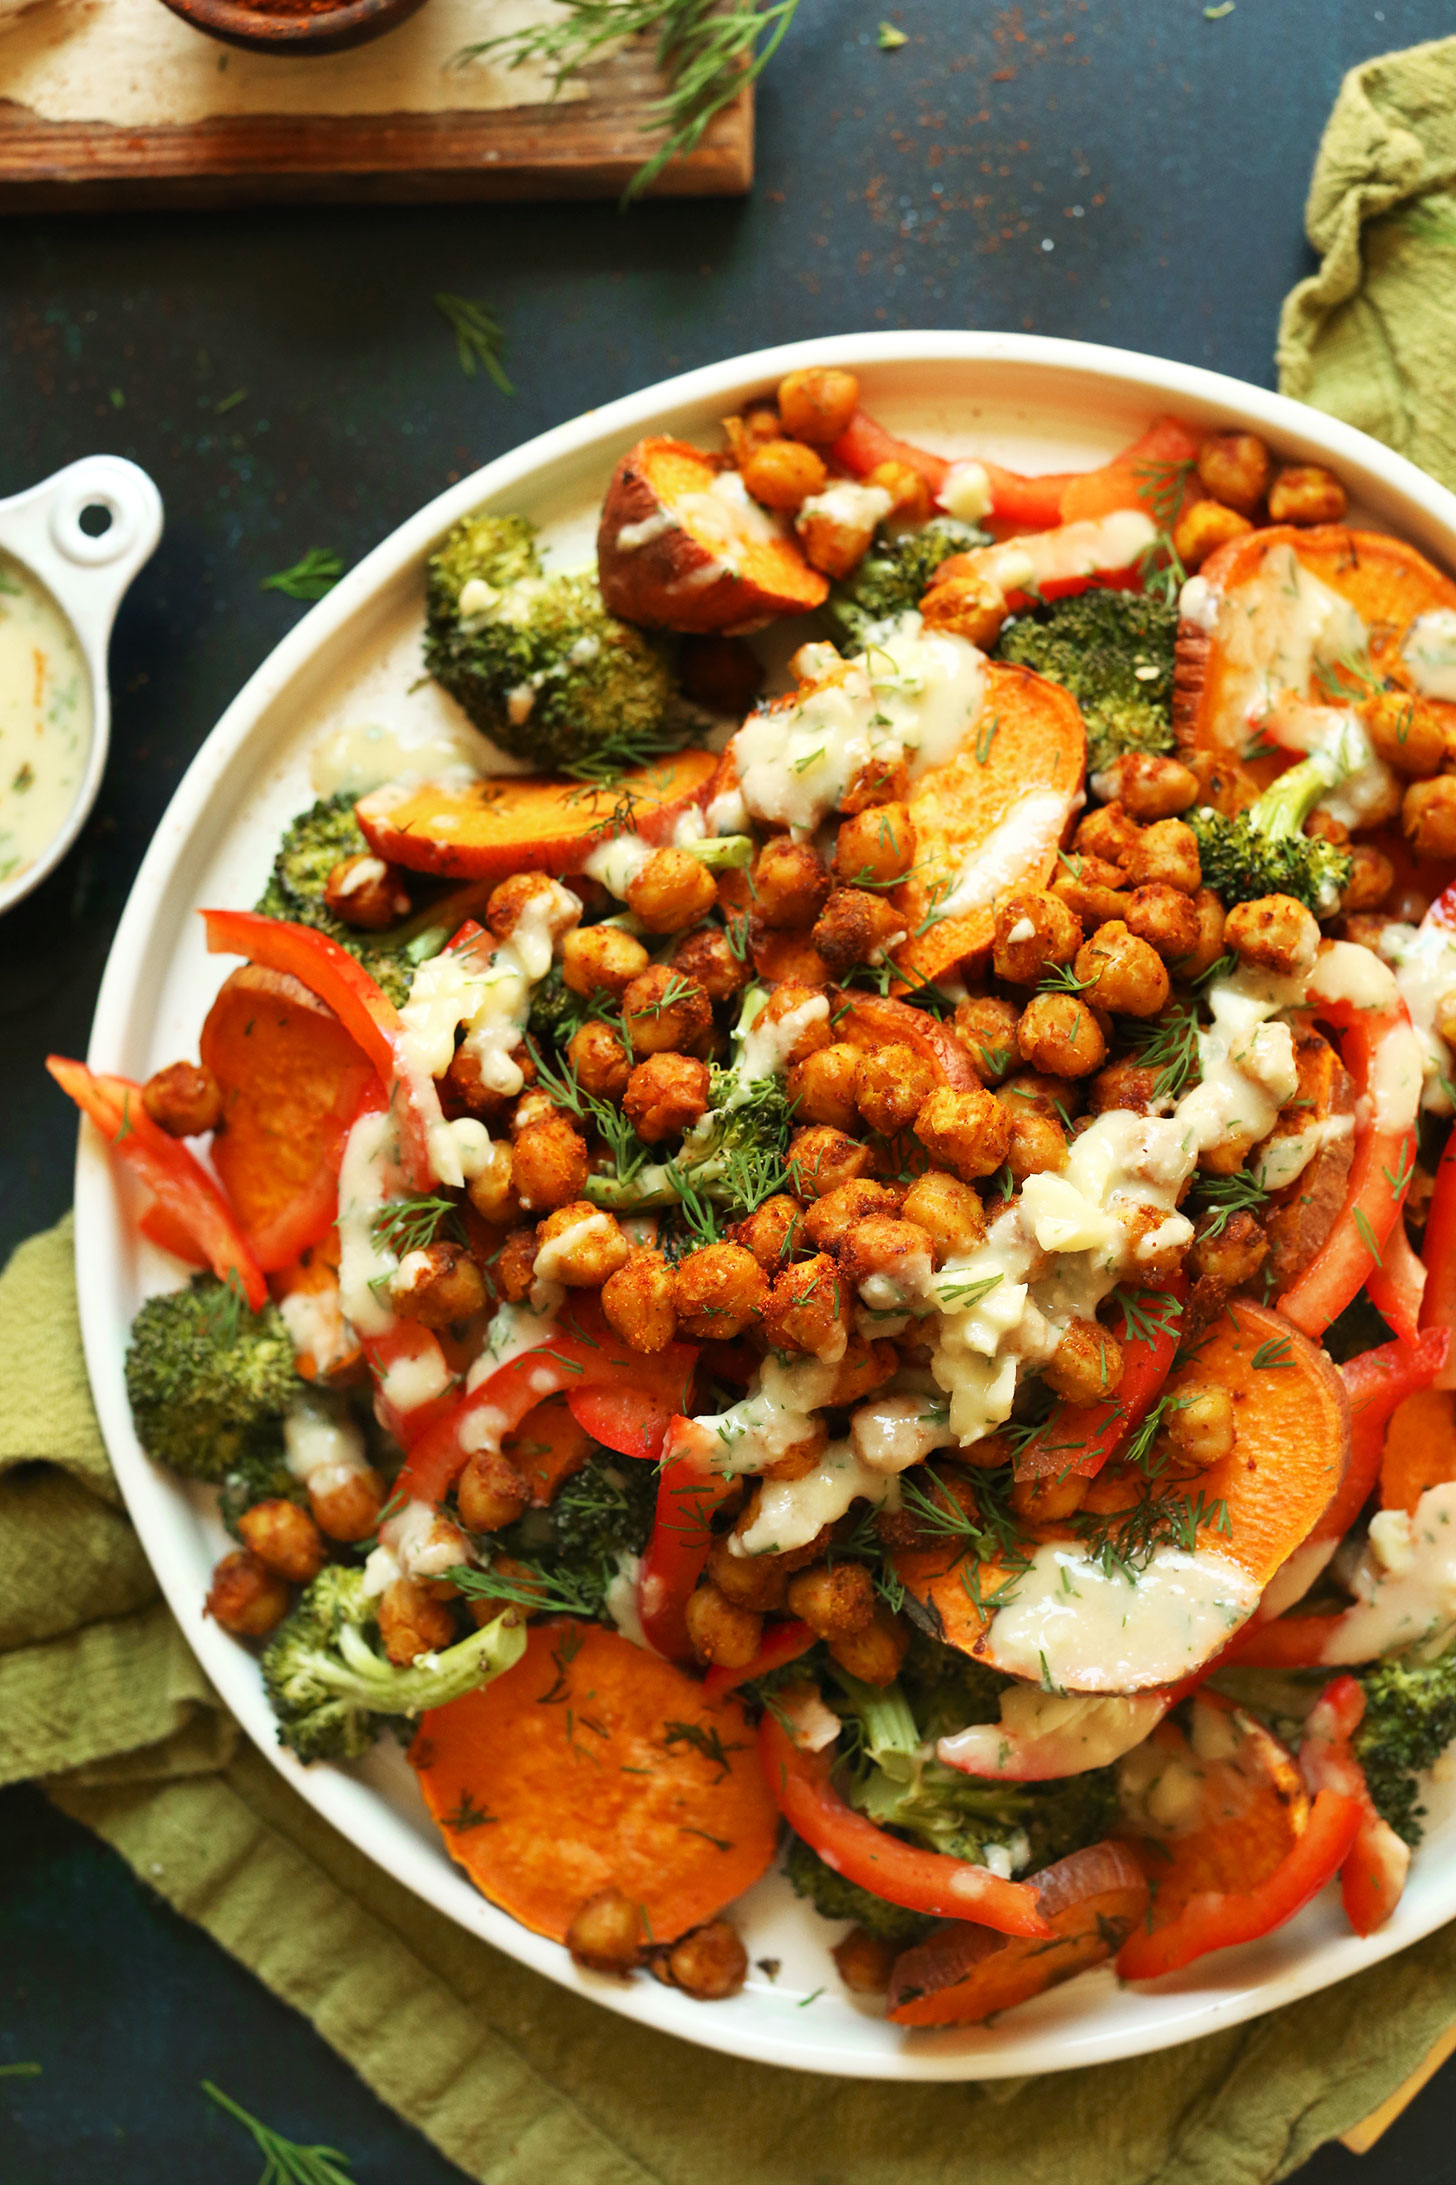 Plate of our Broccoli Sweet Potato Chickpea Salad recipe for a healthy plant-based meal